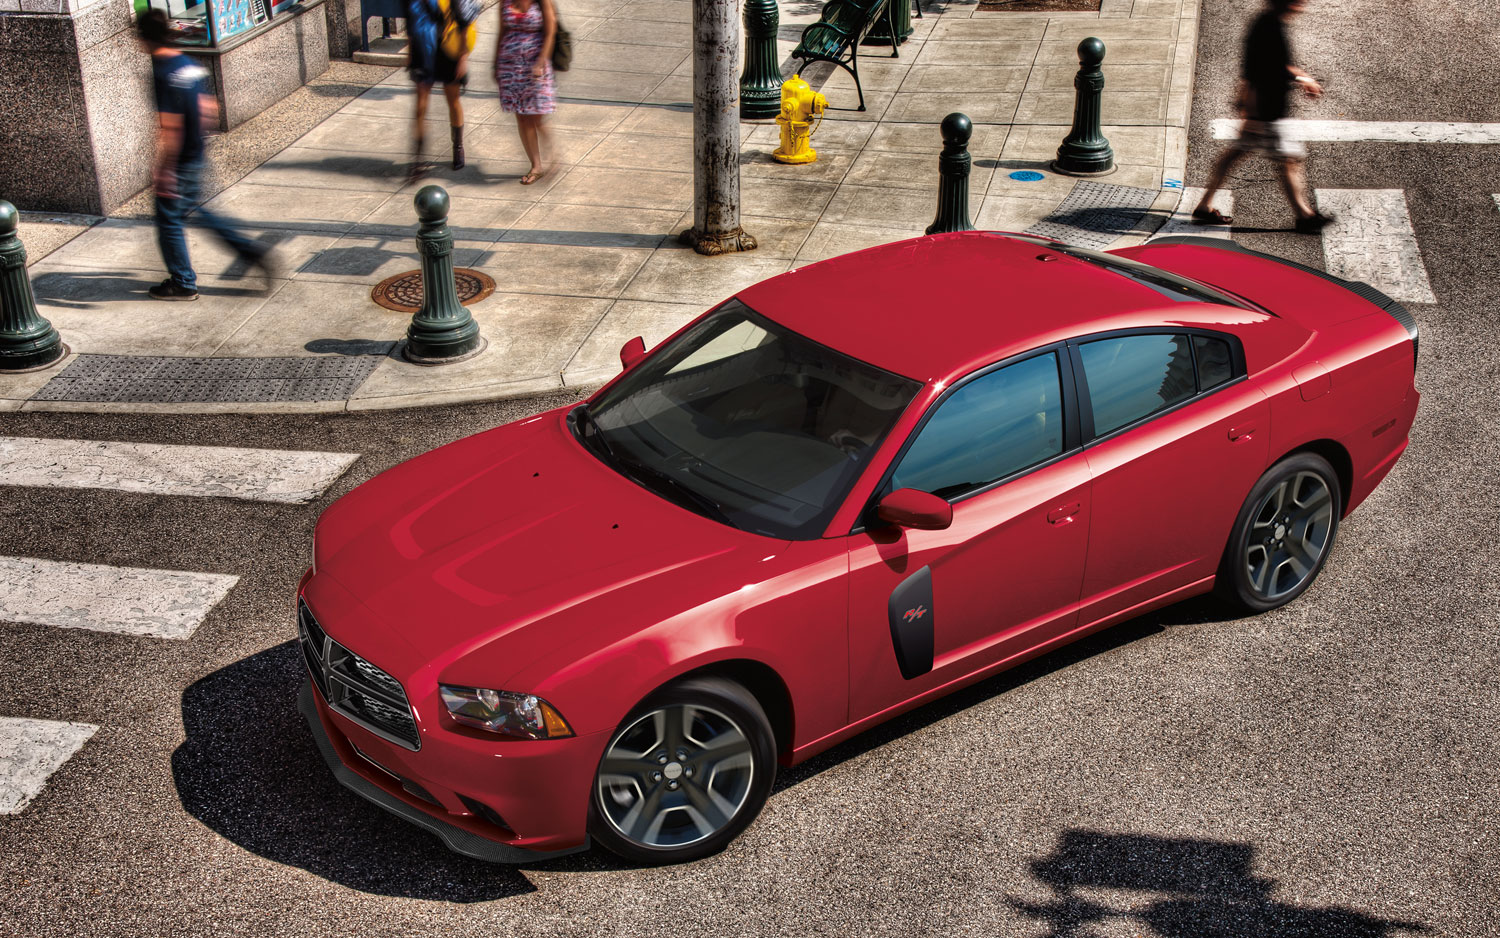 2012 Dodge Charger Redline Front Three Quarters View3